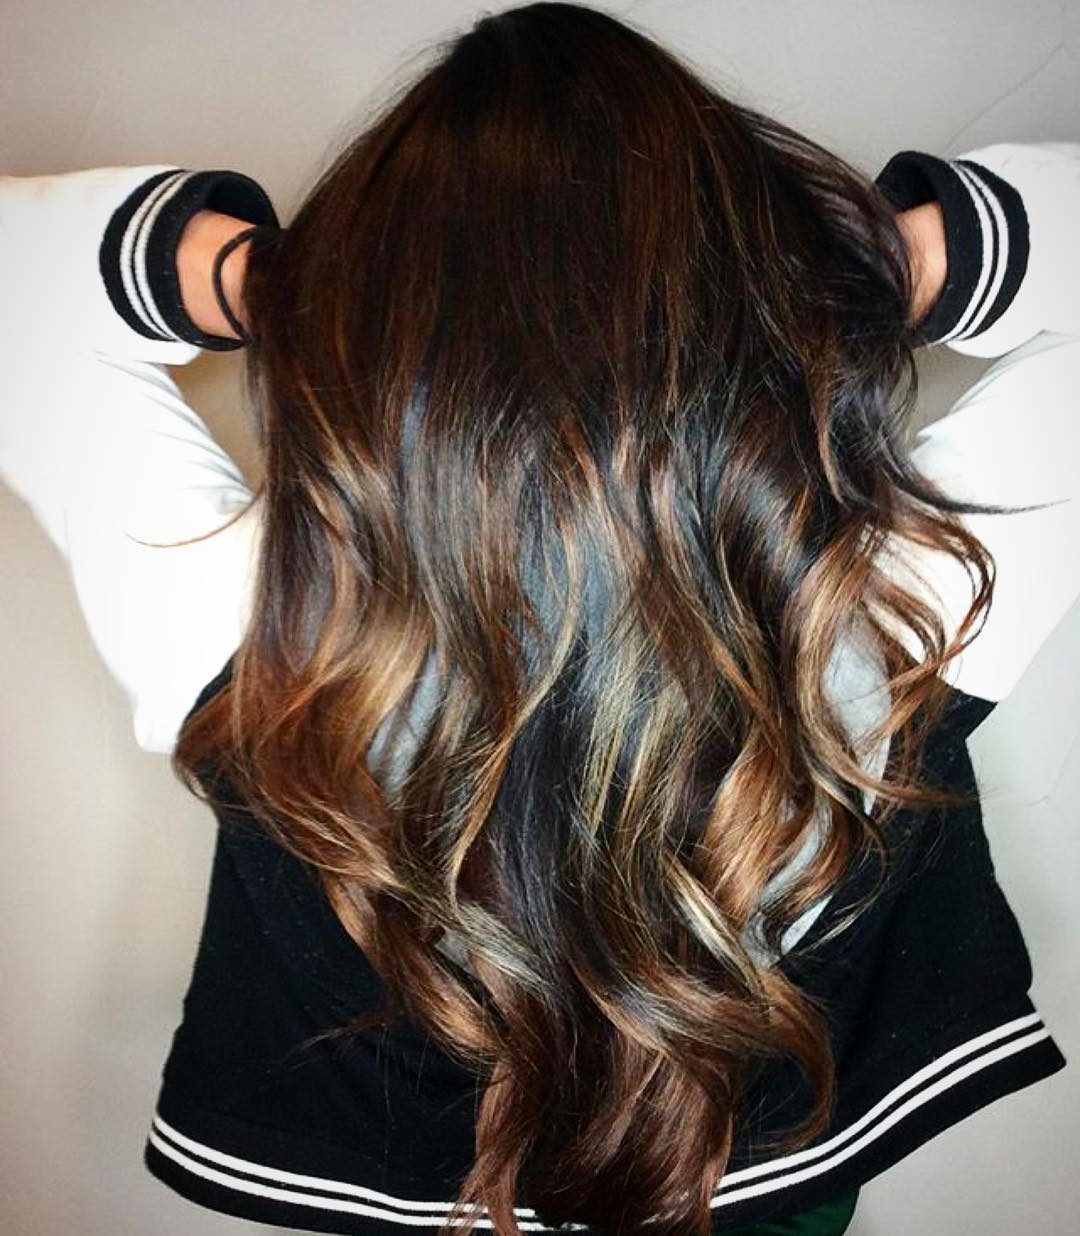 Hairstyle Guru Regarding Most Recent Balayage Hairstyles For Long Layers (Gallery 8 of 20)